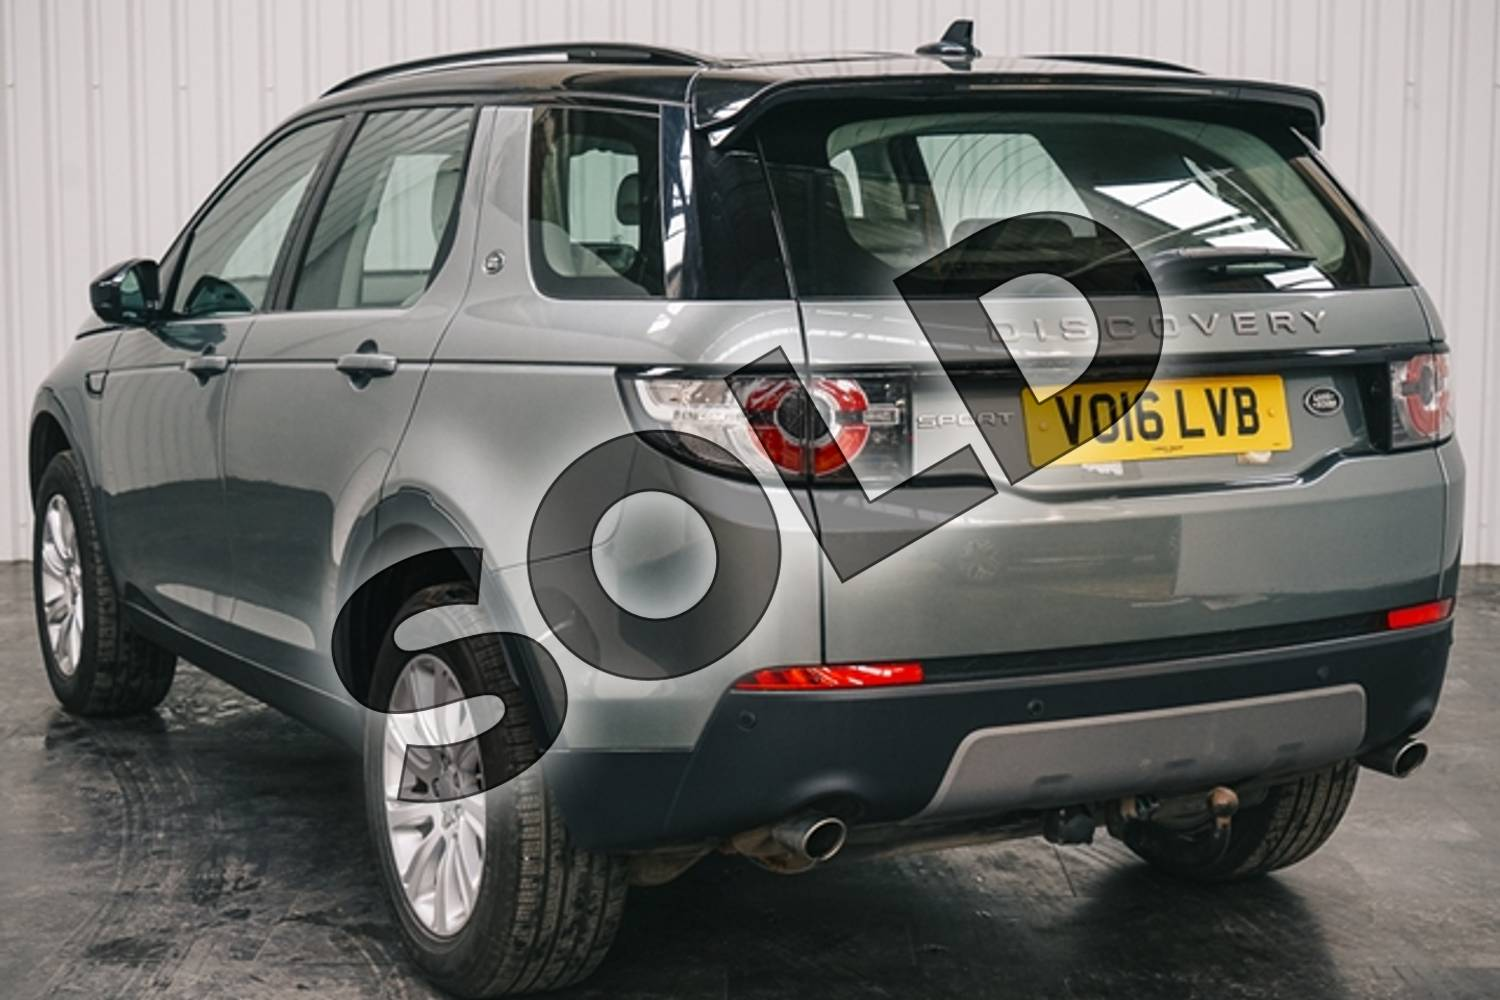 2016 Land Rover Discovery Sport Diesel SW 2.0 TD4 180 SE Tech 5dr Auto in Metallic - Corris grey at Listers Jaguar Solihull